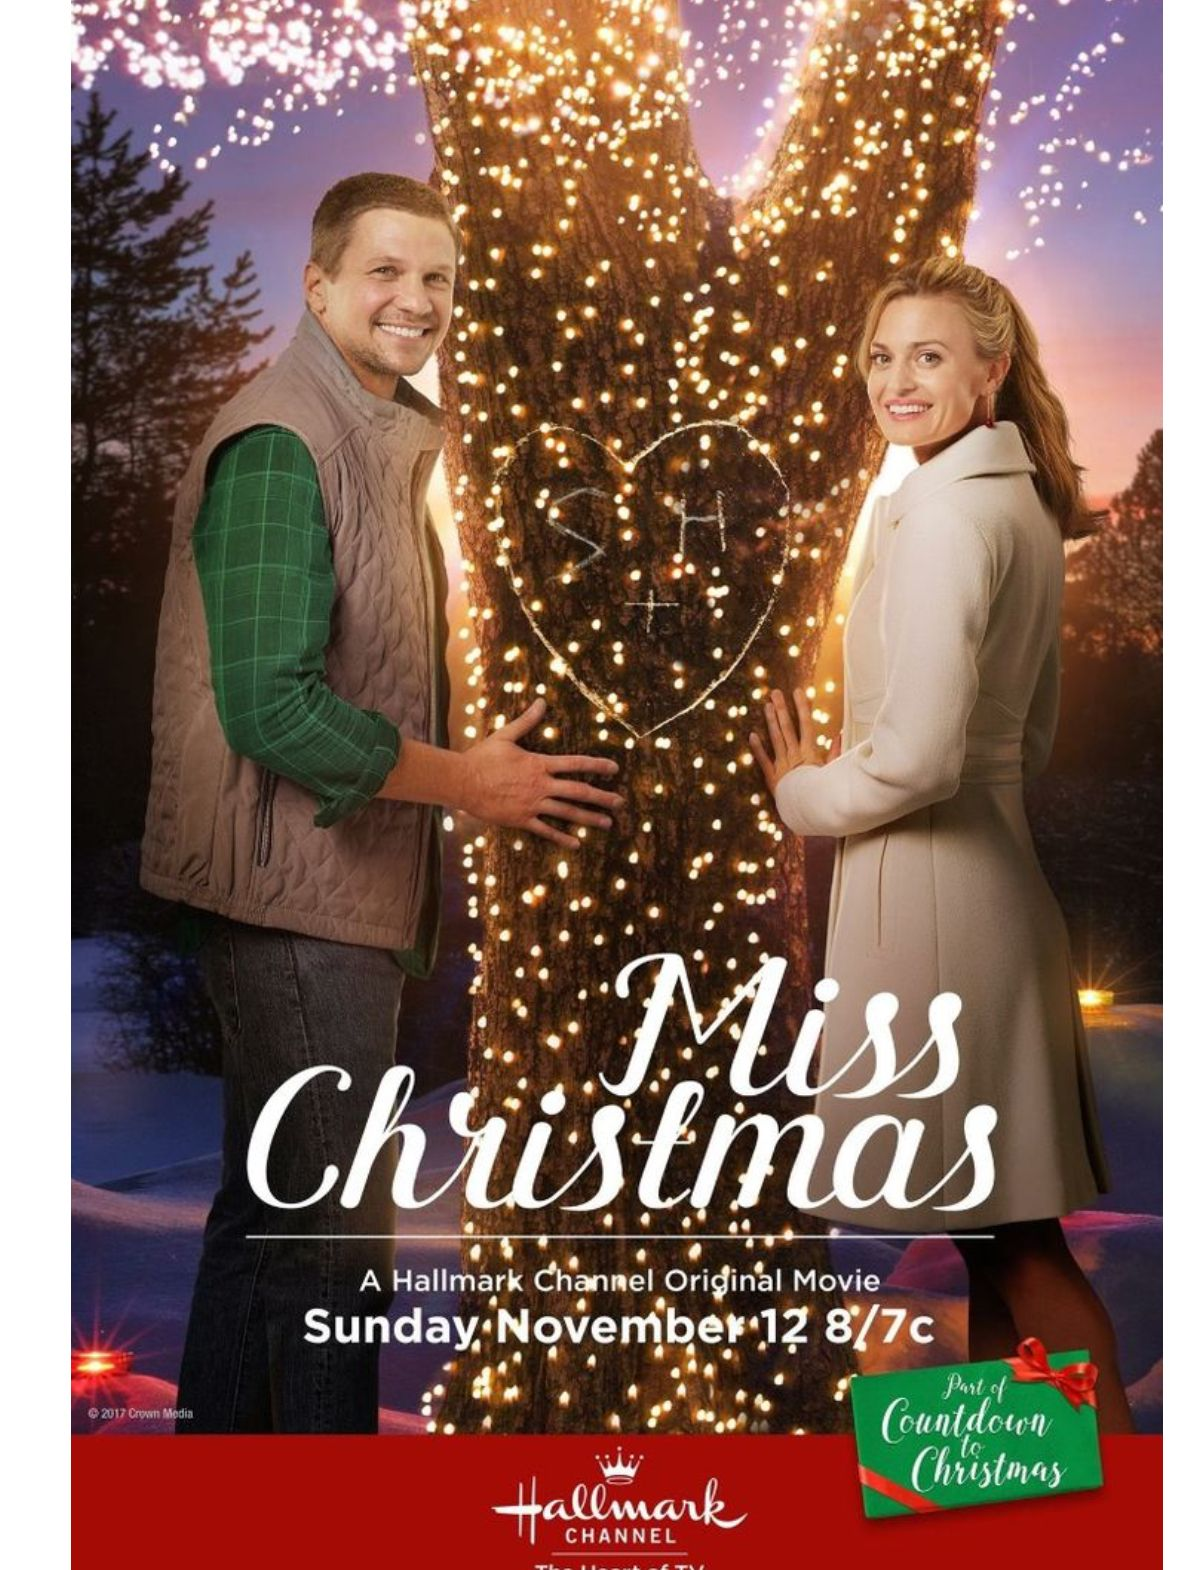 Pin By Yourfavoritegifts On Top 10 Christmas Dvds Hallmark Channel Christmas Movies Hallmark Christmas Movies Christmas Movies